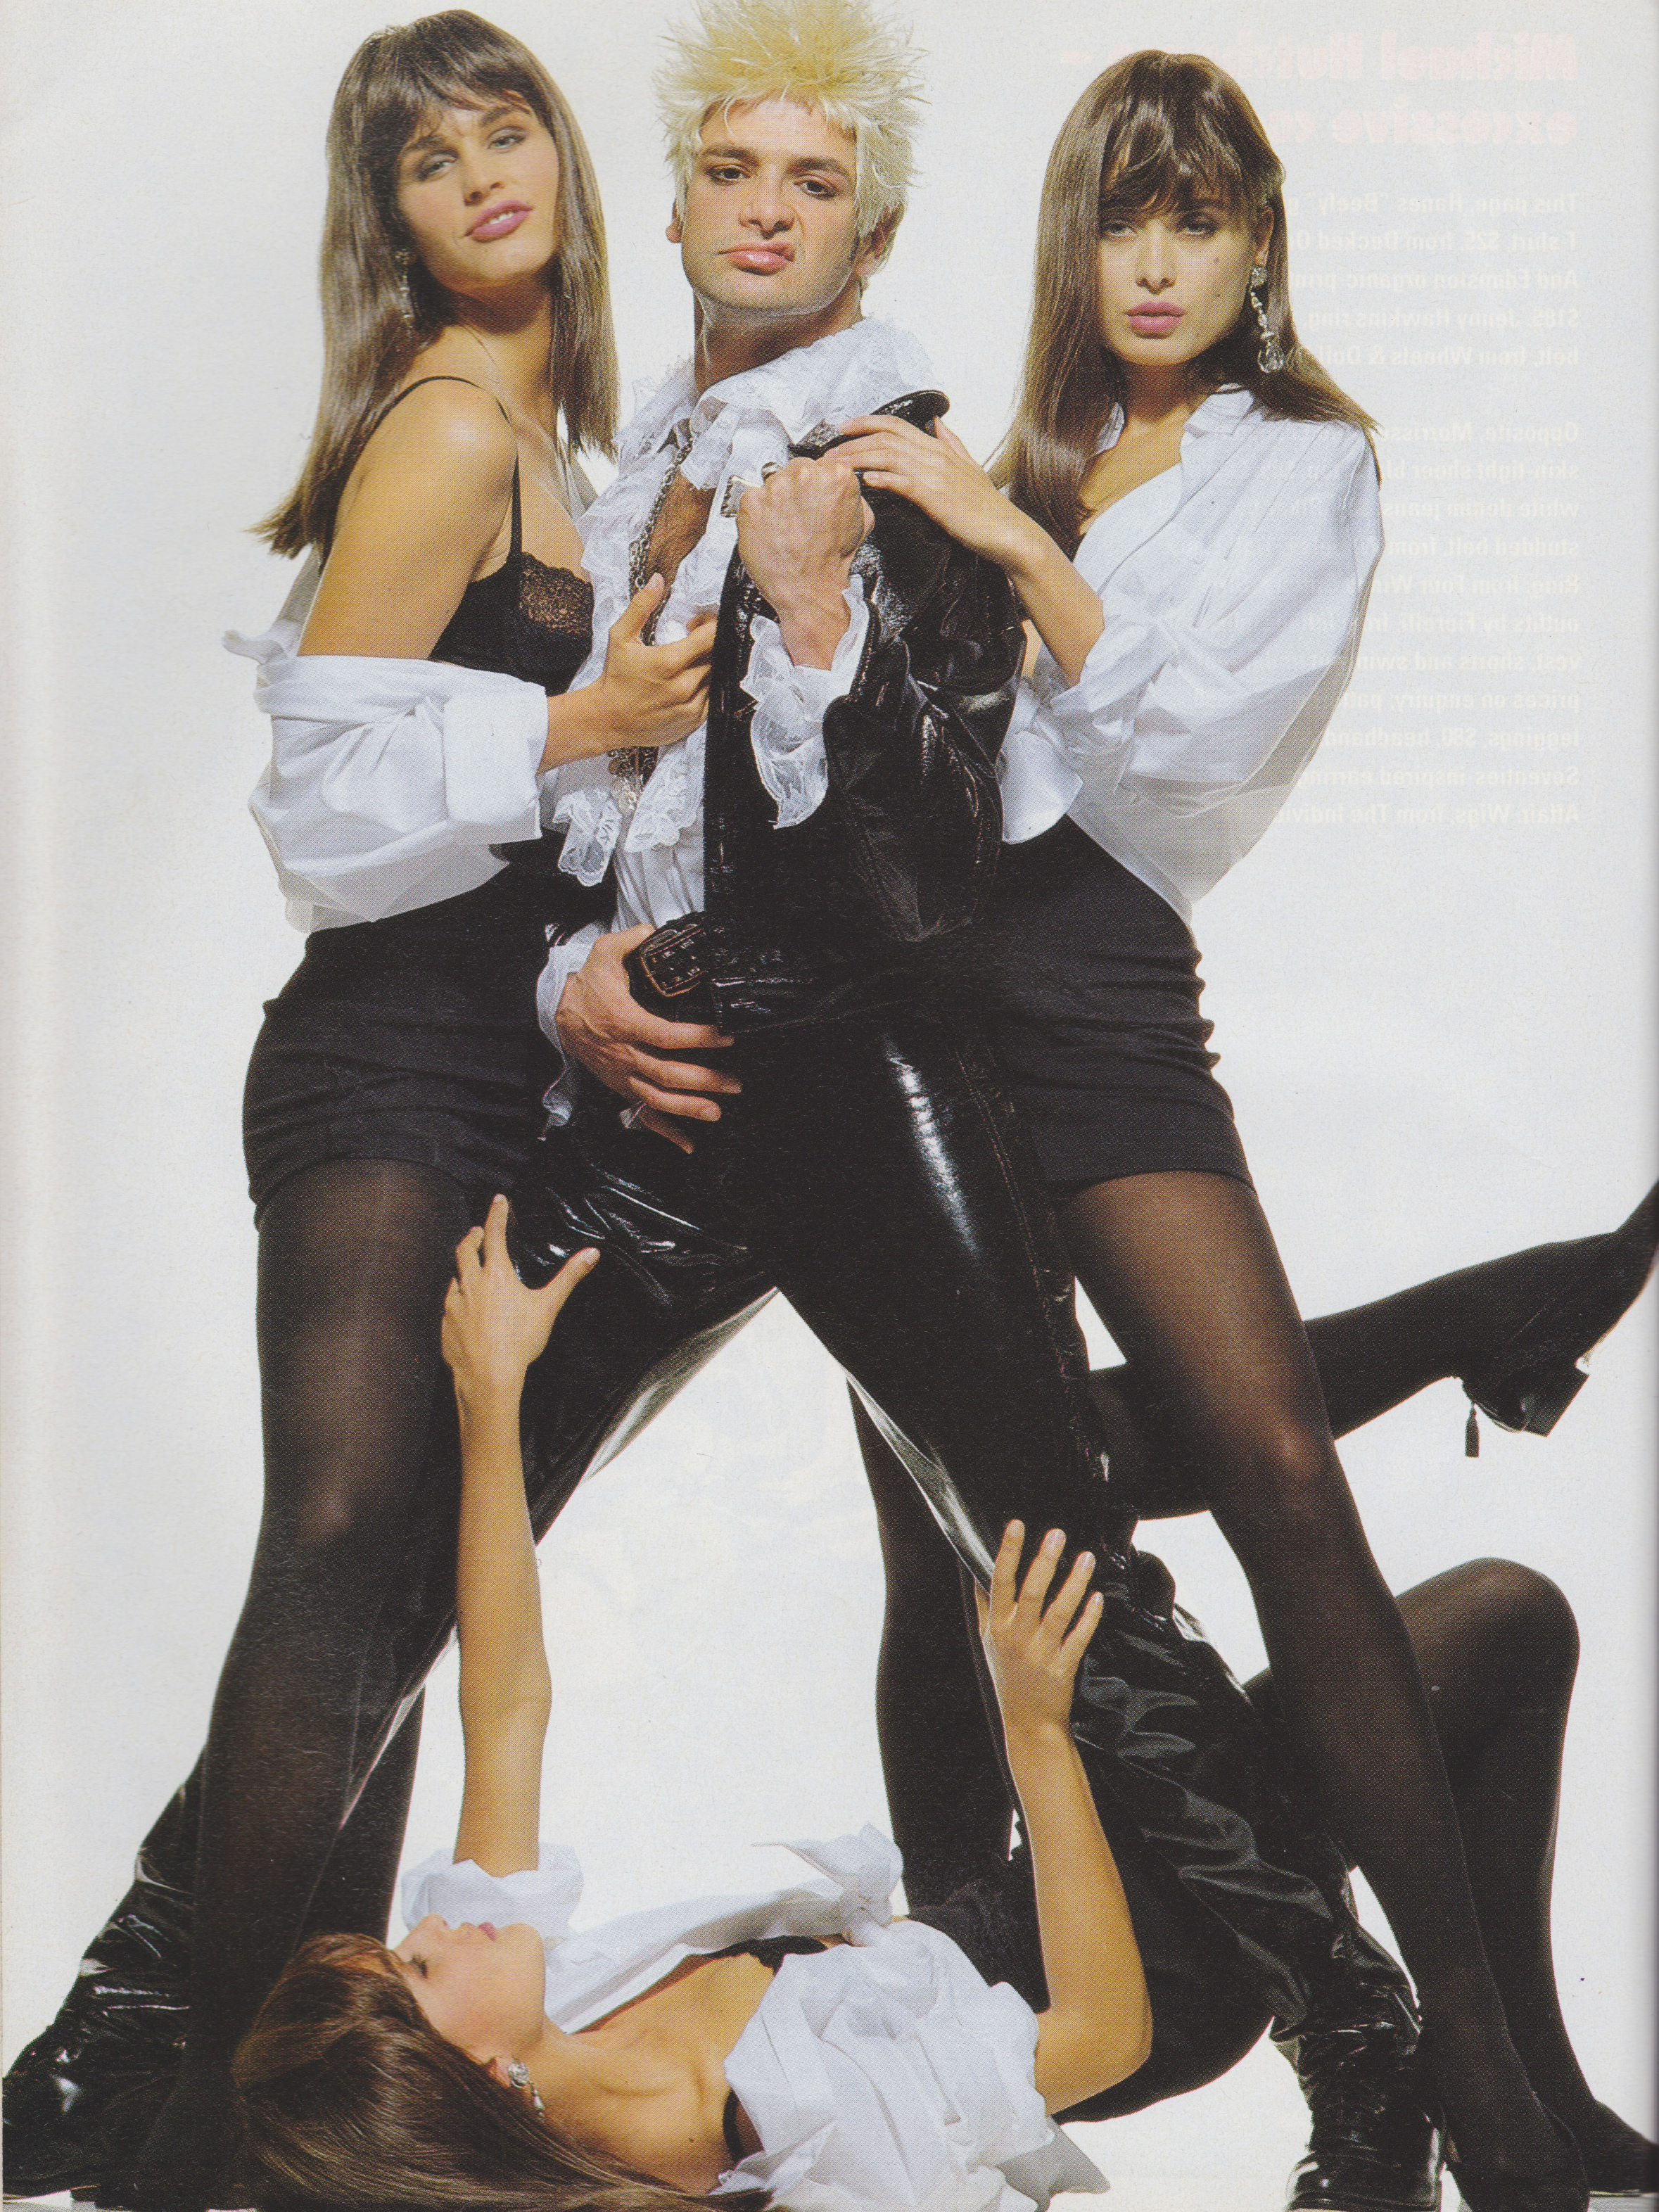 Cosmopolitan September 1991 | Rock n Role Models (Toneya Bird, Francoise Skeates & 2 Unknowns) 07.jpeg